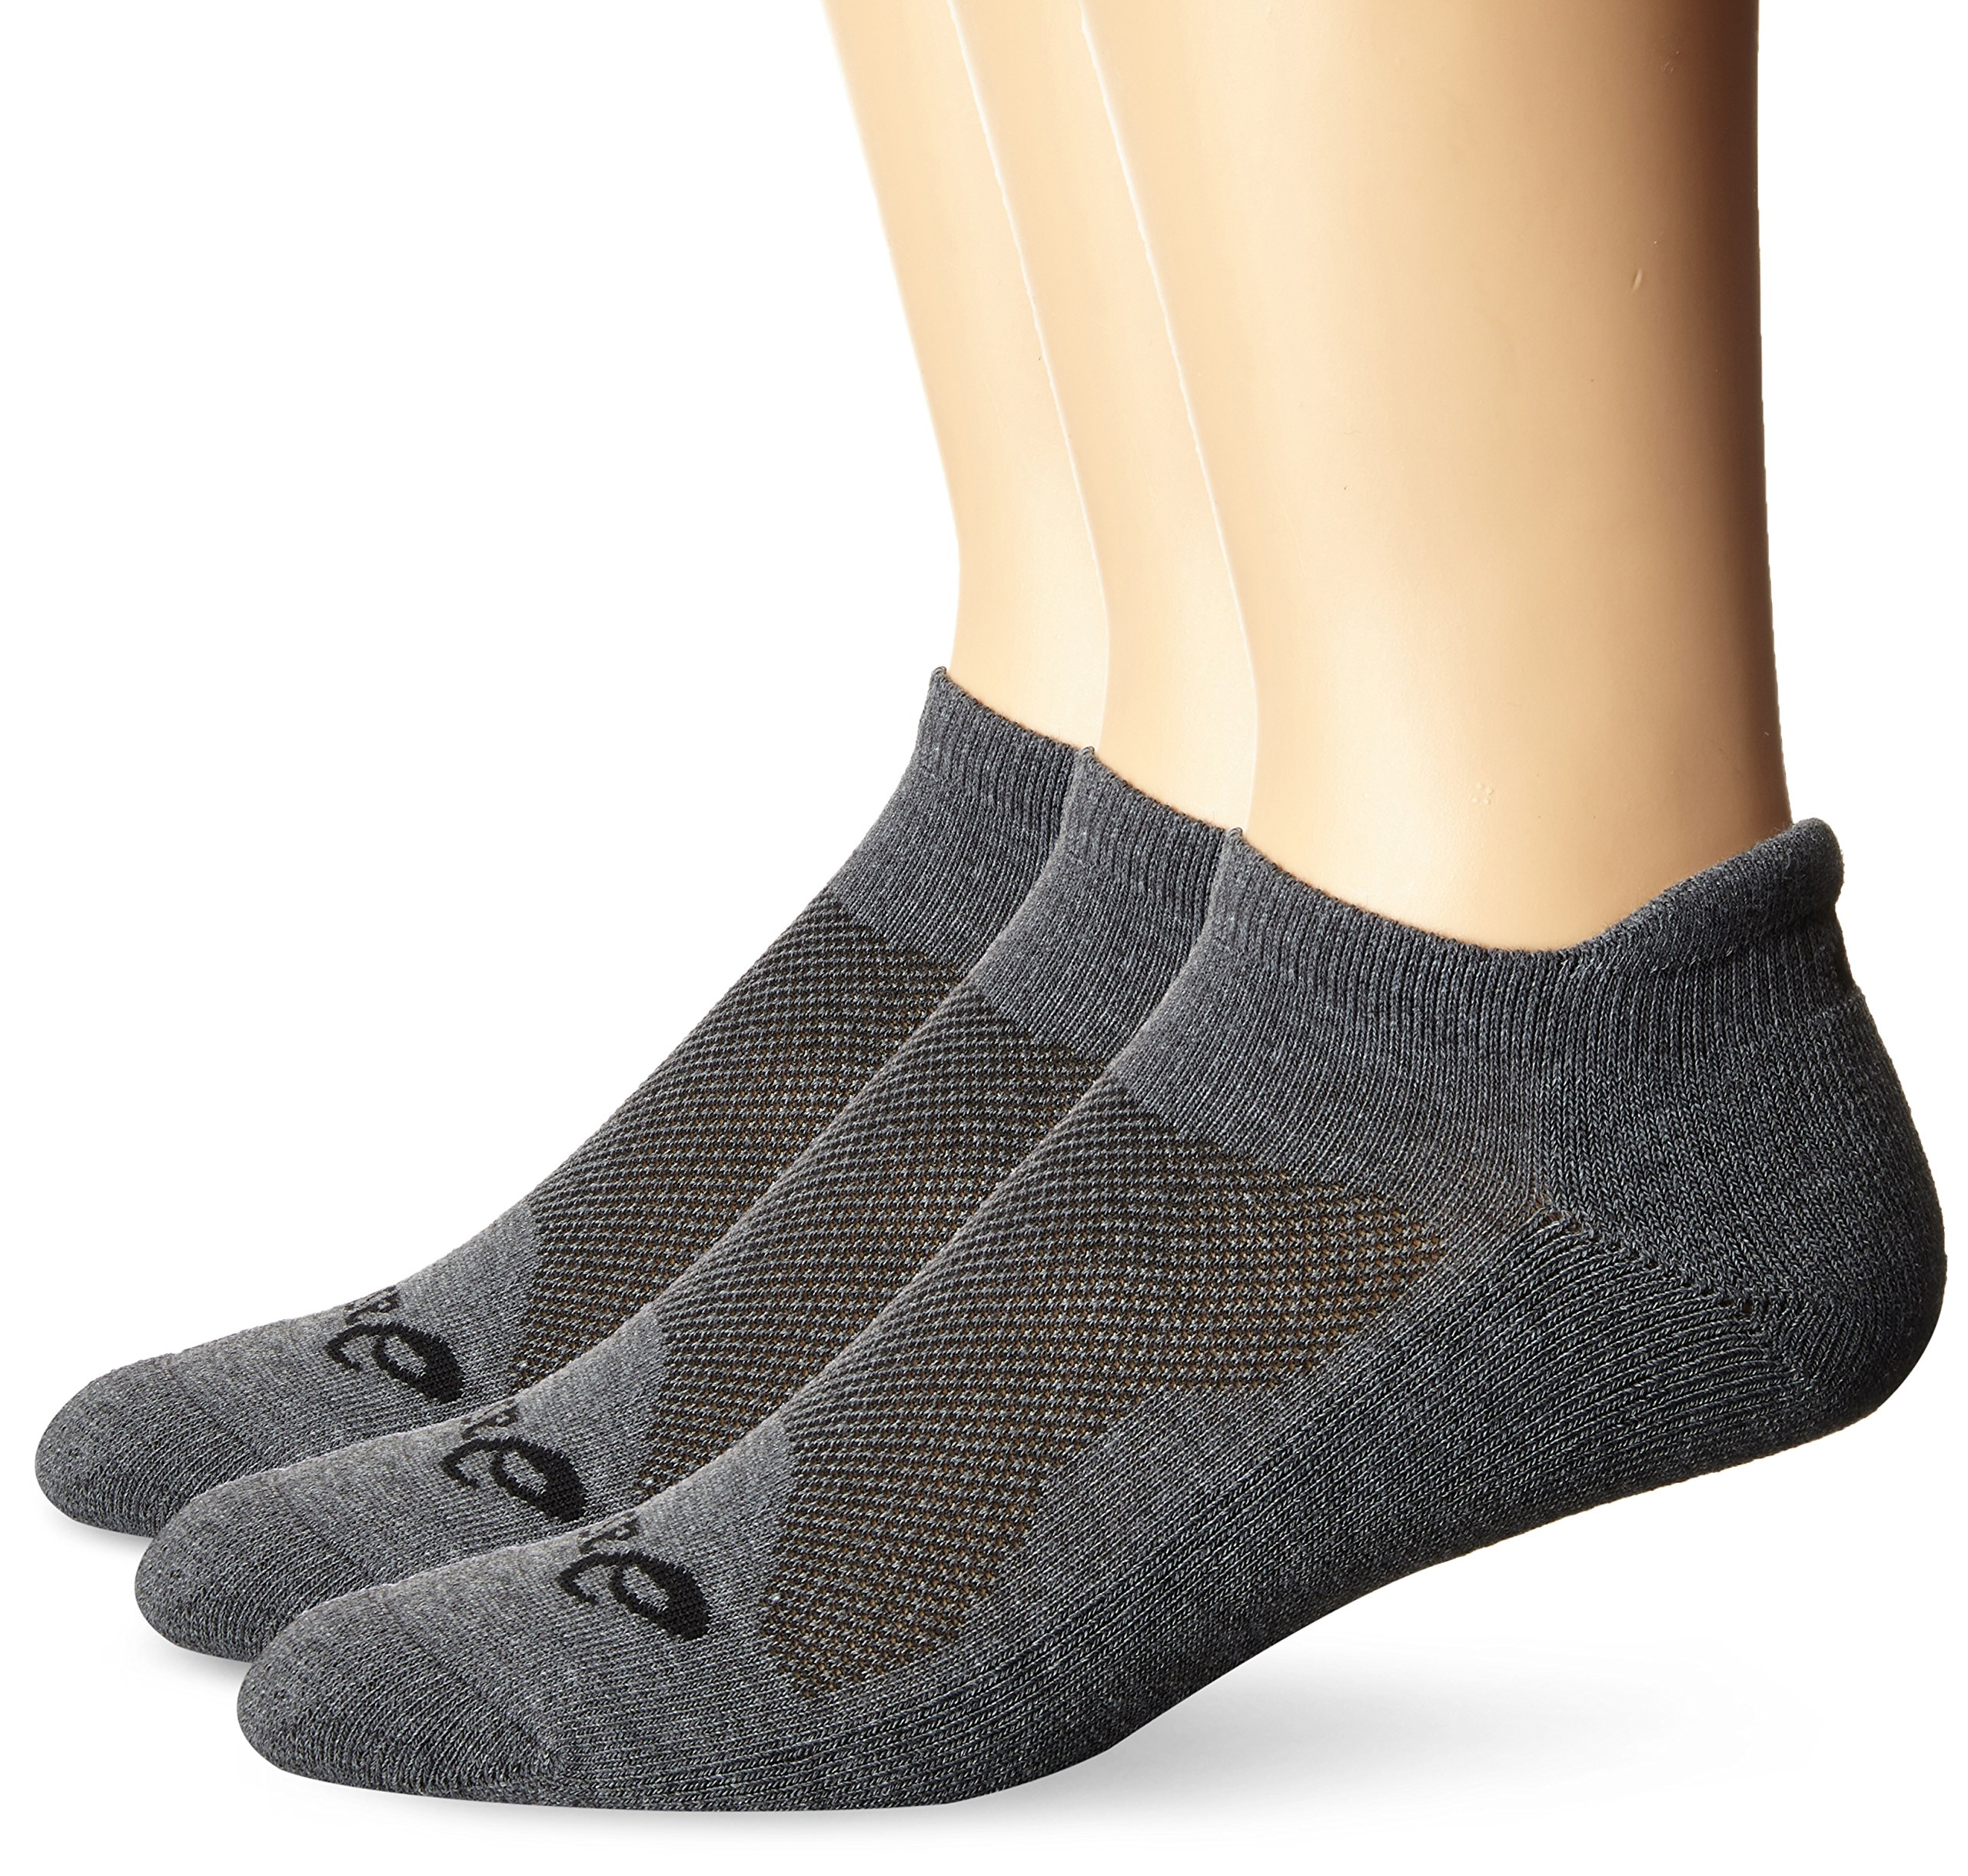 ASICS Cushion Low Cut Socks (Pack of 3), Grey Heather, Medium by ASICS